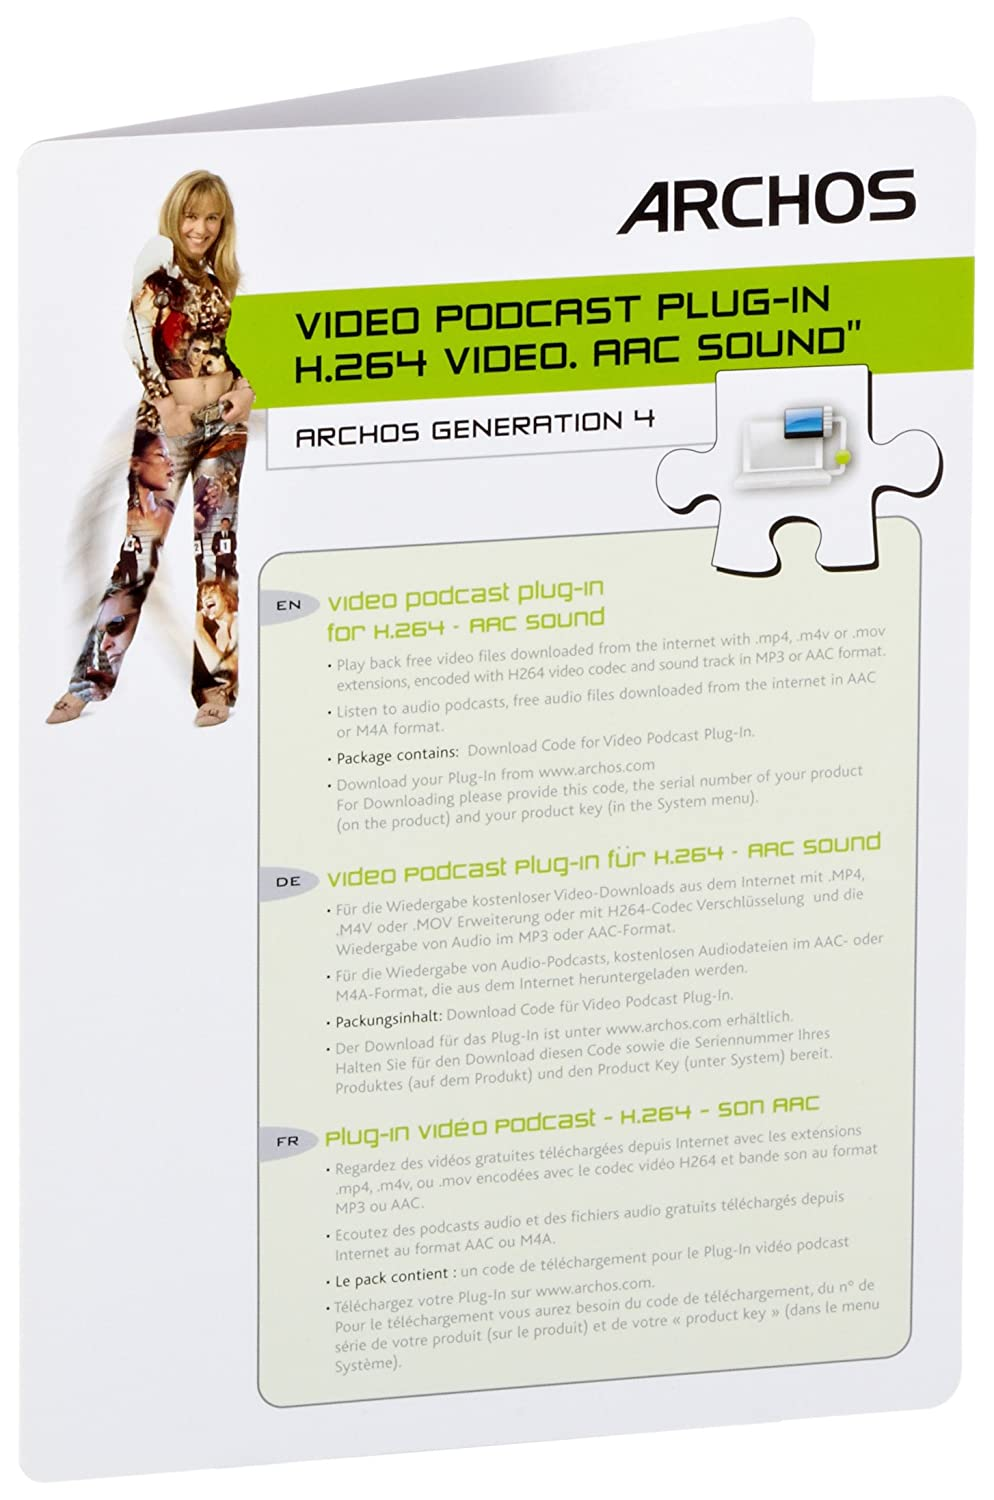 VIDEO ARCHOS H.264 PLUG-IN AUDIO AAC PODCAST TÉLÉCHARGER